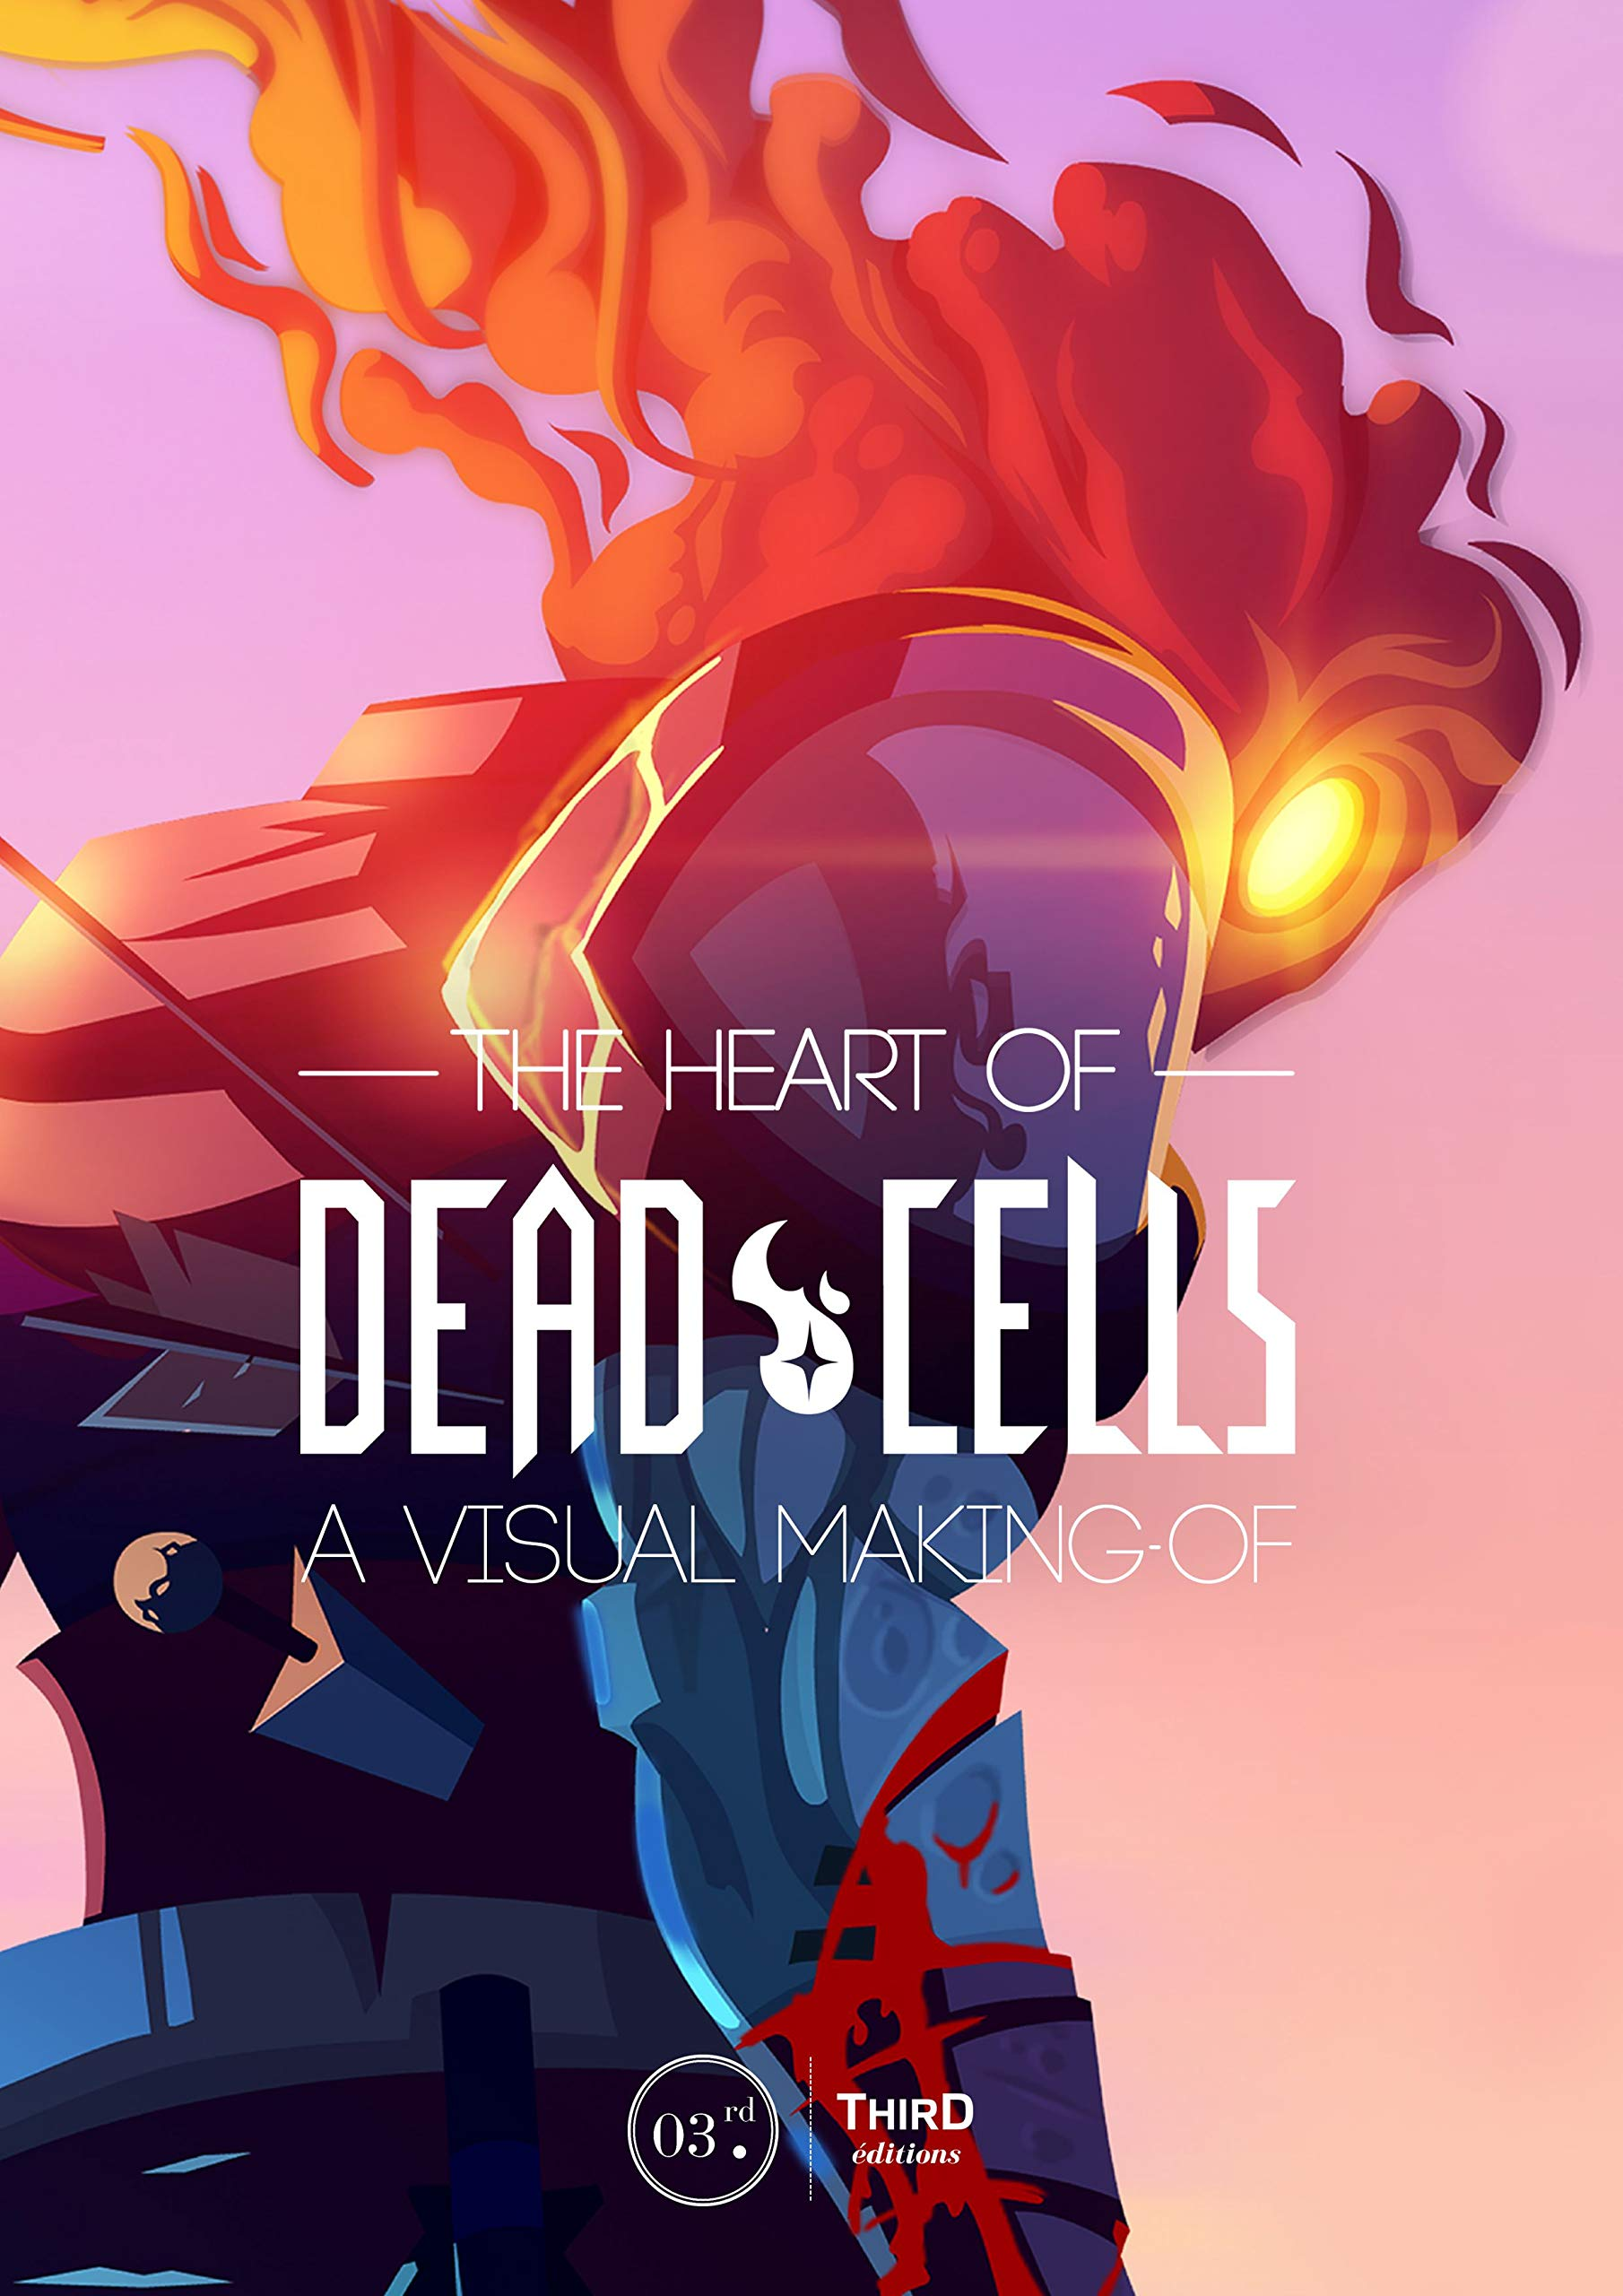 Reinier, B: The Heart Of Dead Cells: A Visual Making-of: Amazon.es ...